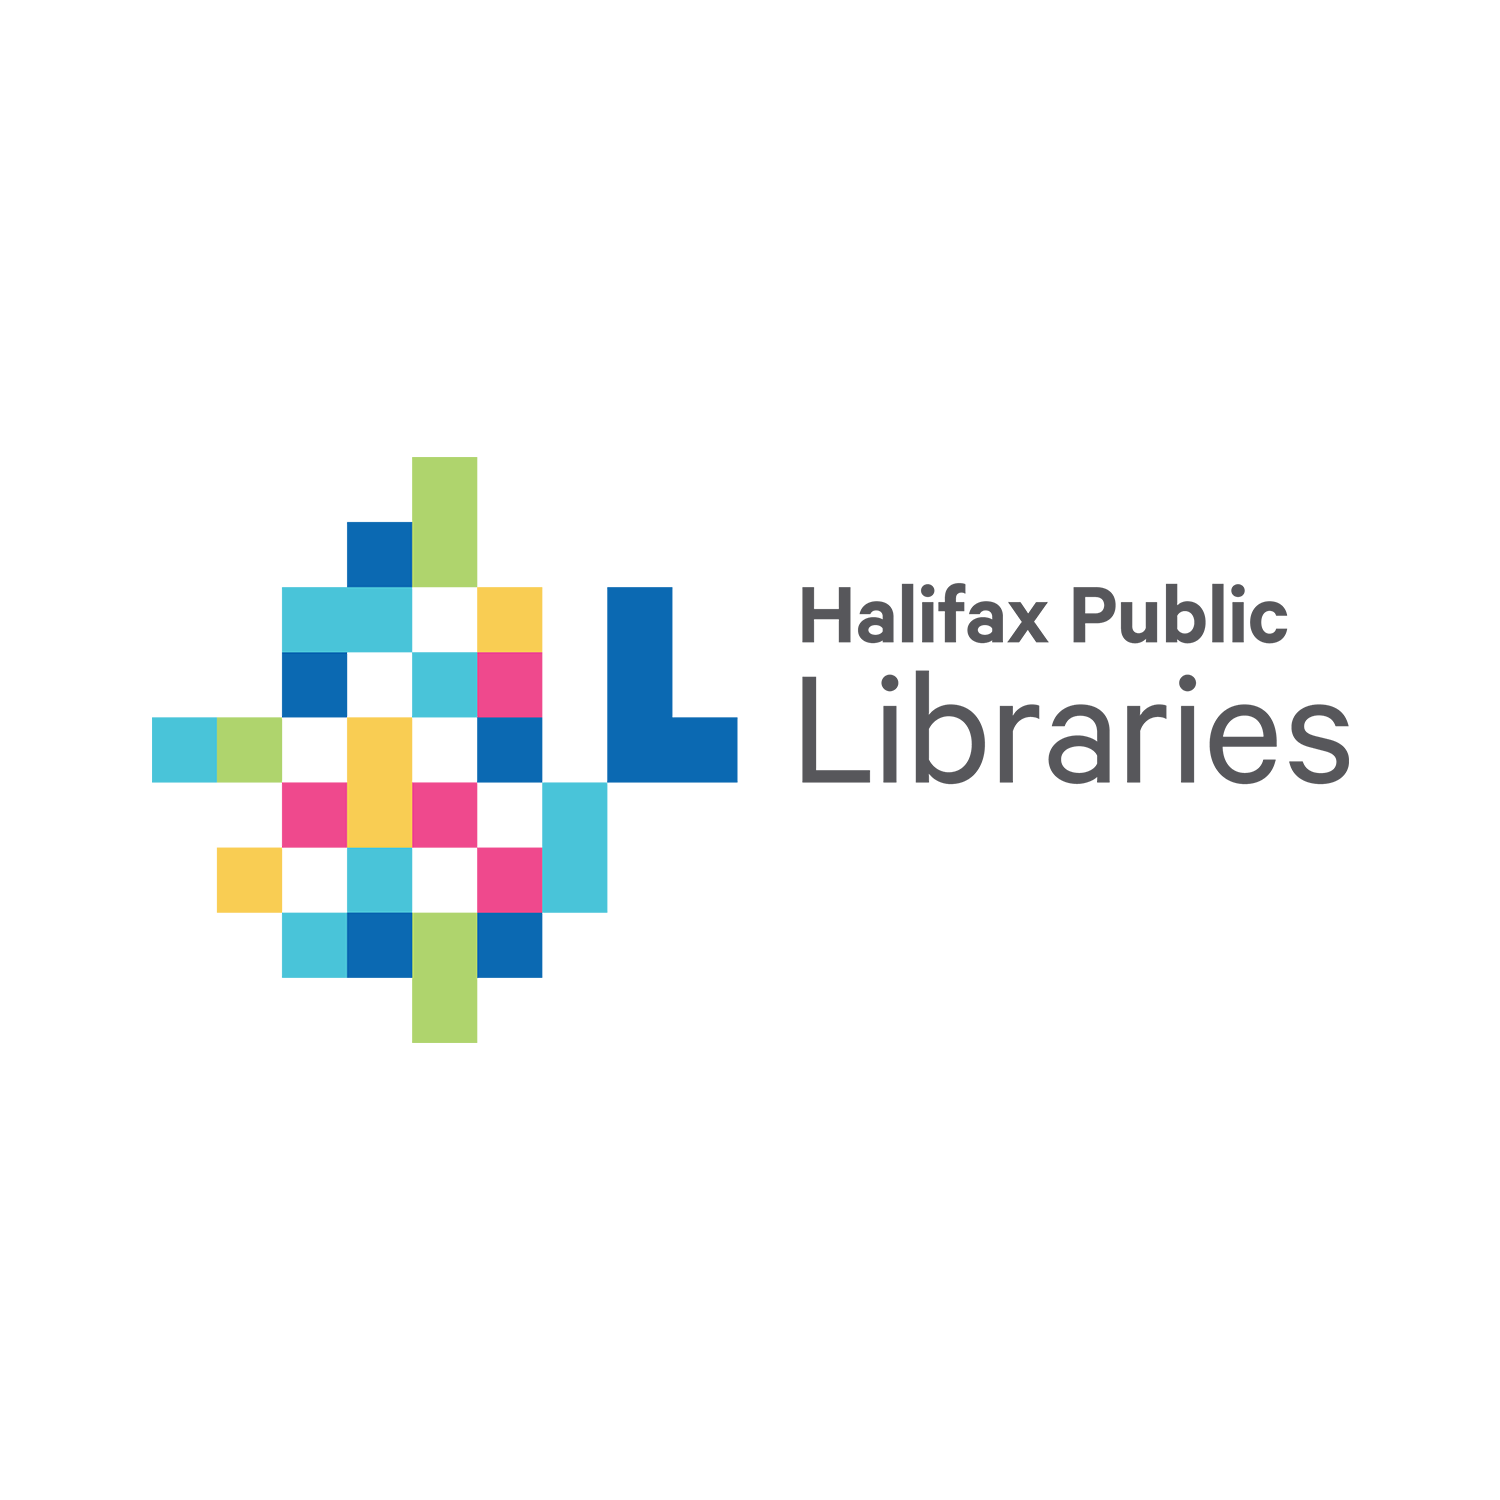 Halifax Public Libraries.png